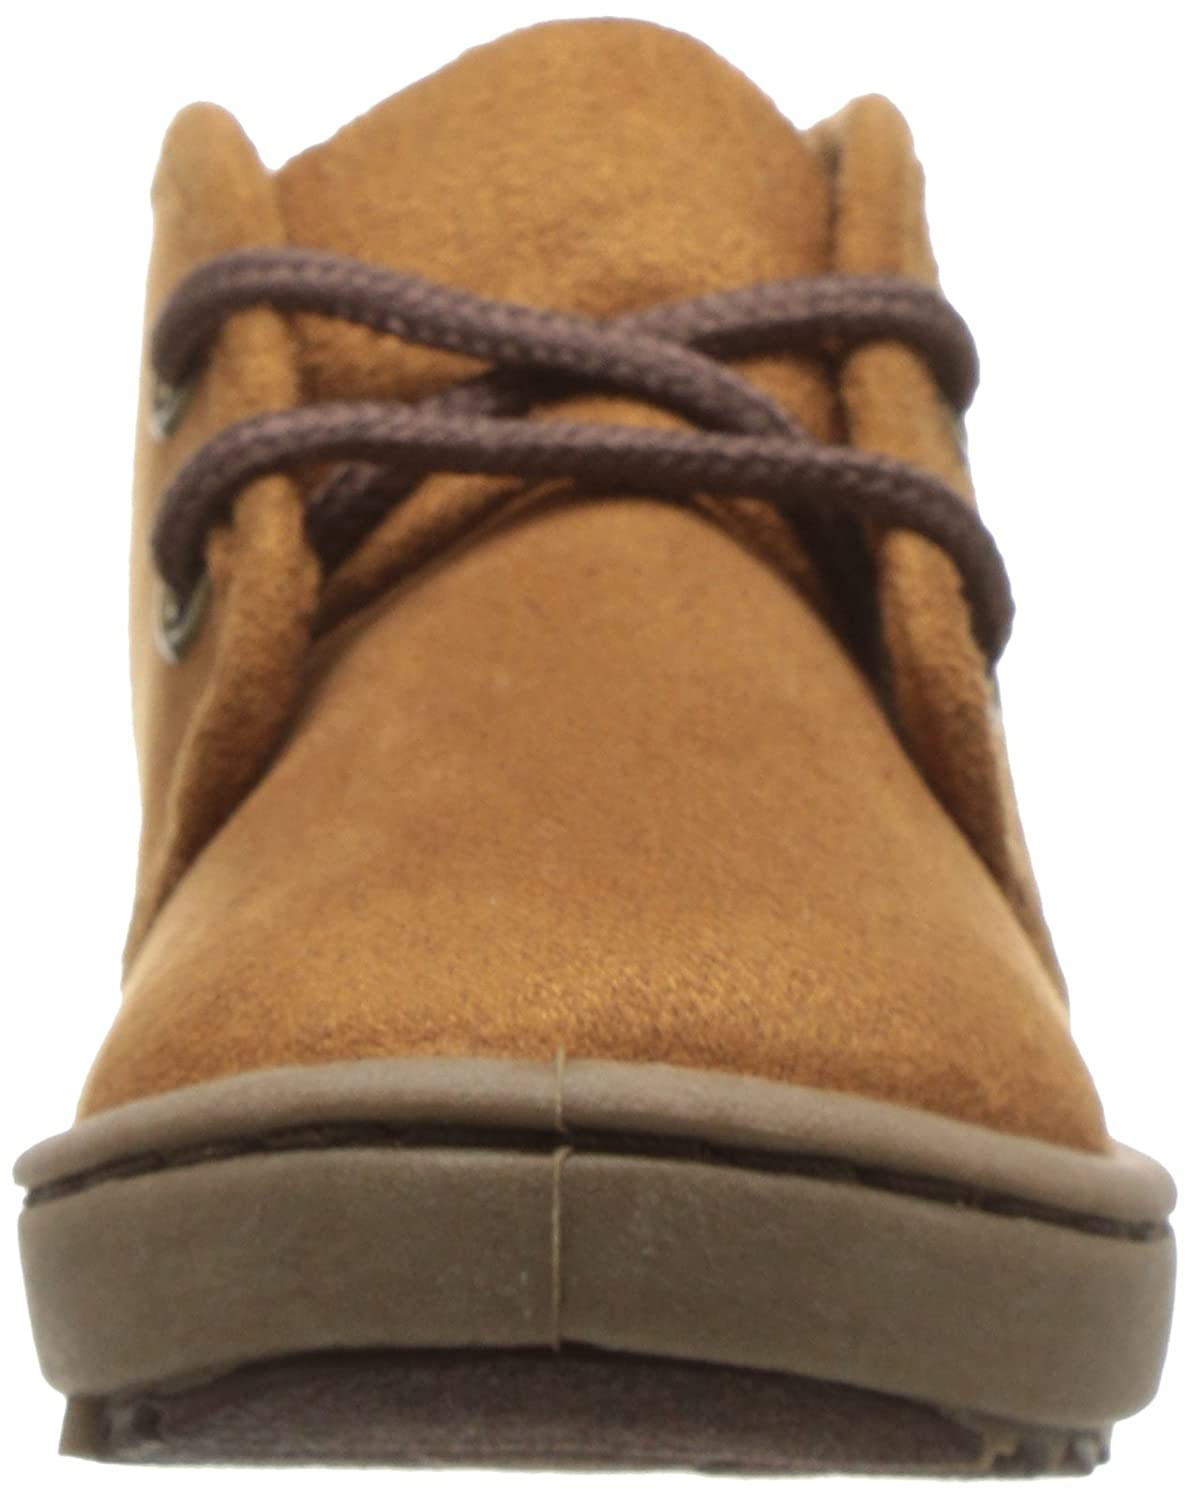 OshKosh BGosh Kids Fane Chukka Boot